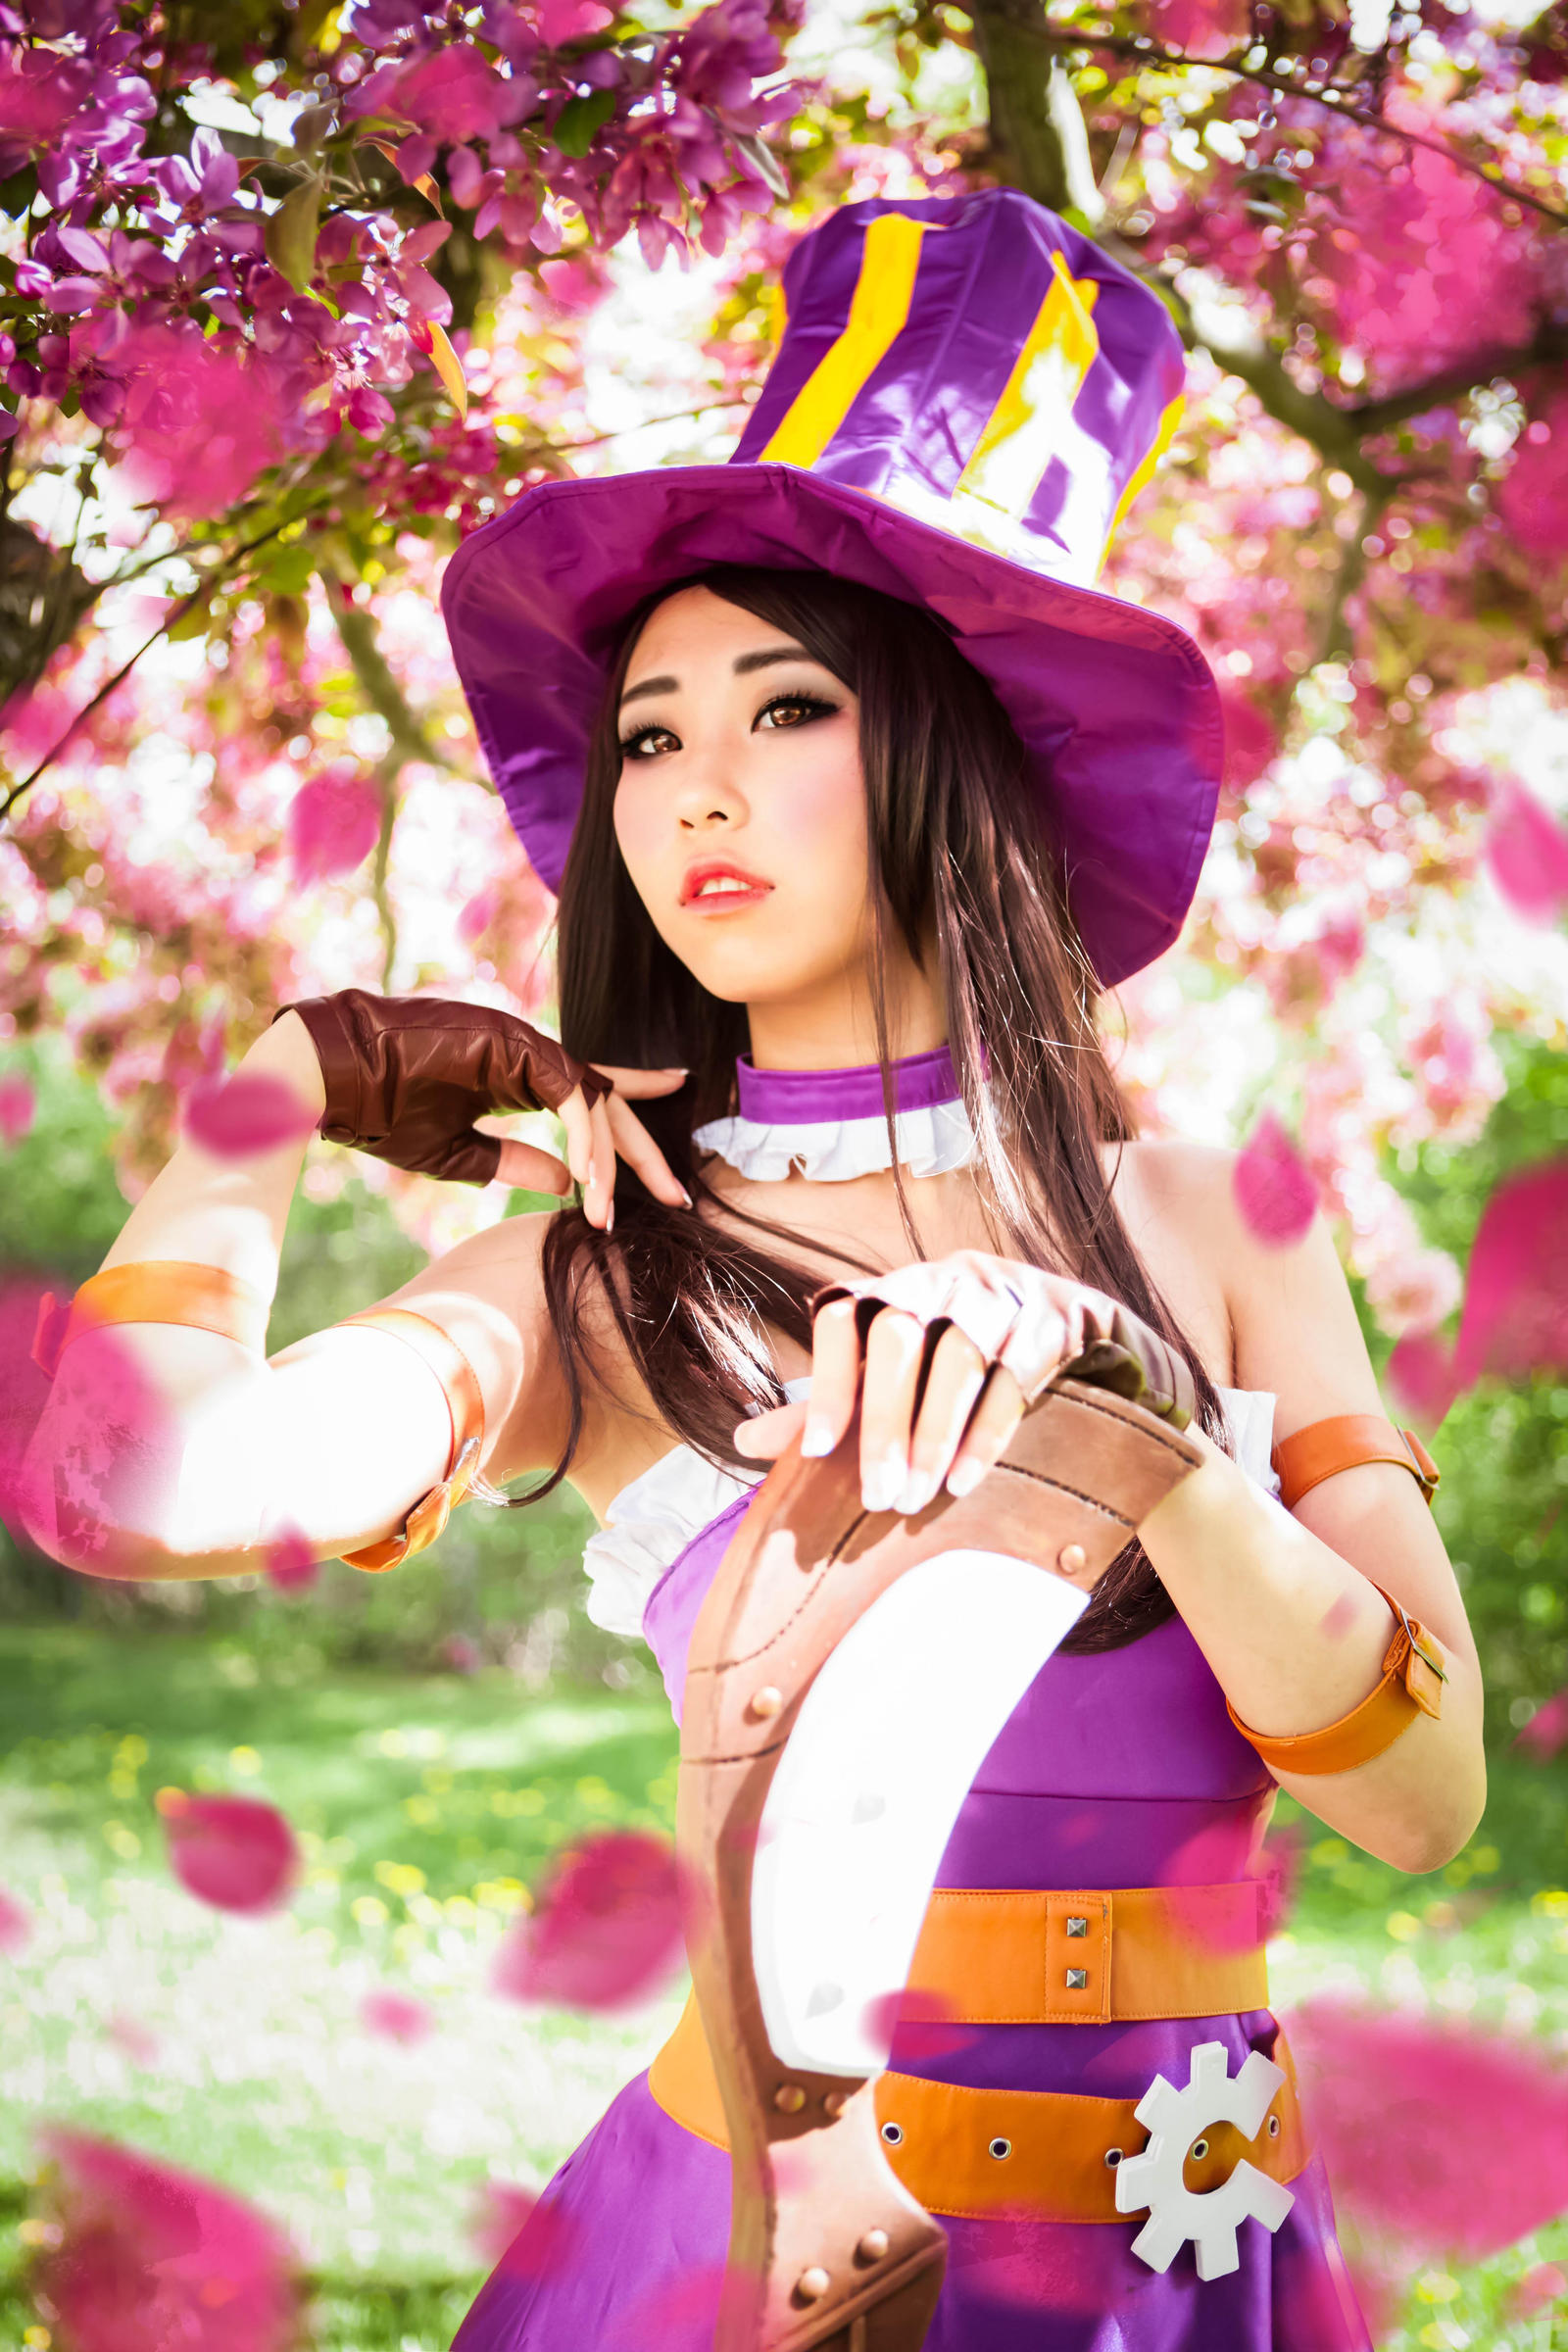 Caitlyn league of legends cosplay